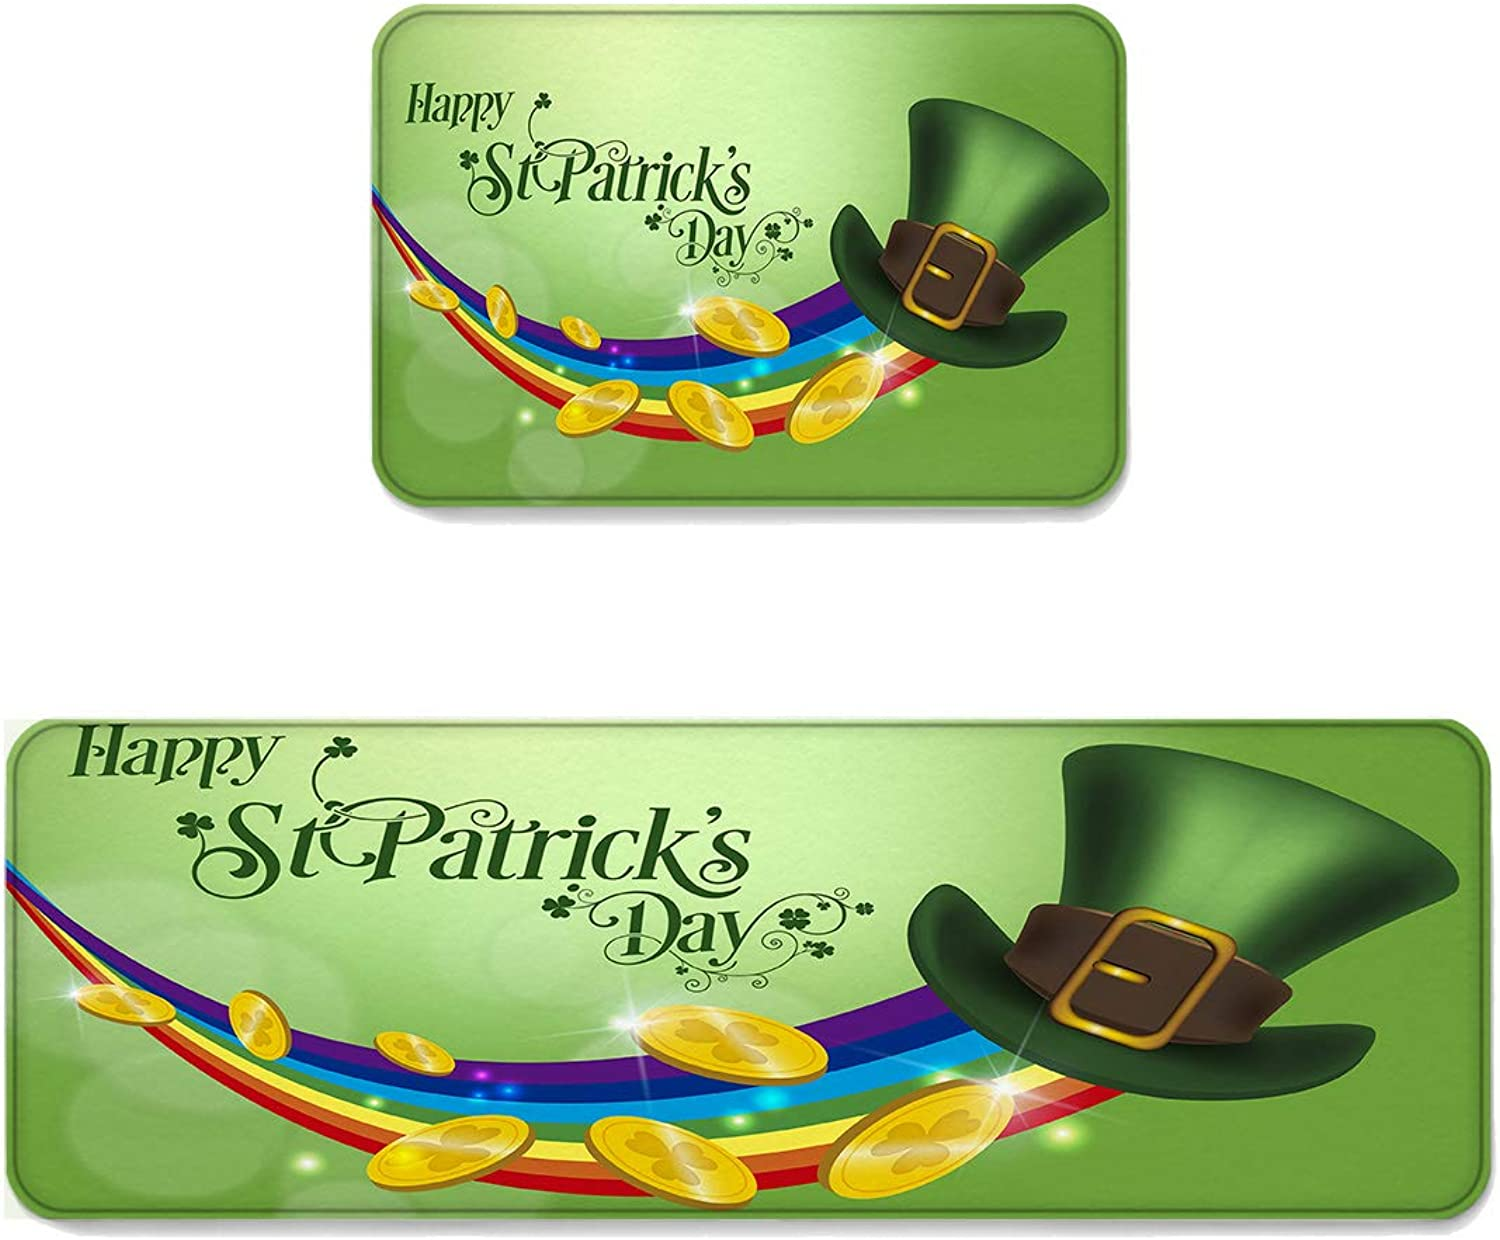 Kitchen Rug Sets 2 Piece Floor Mats Non-Slip Rubber Backing Area Rugs Hat gold Coin Rainbow Happy St Patrick's Day Doormat Washable Carpet Inside Door Mat Pad Sets (19.7  x 31.5 +19.7  x 47.2 )